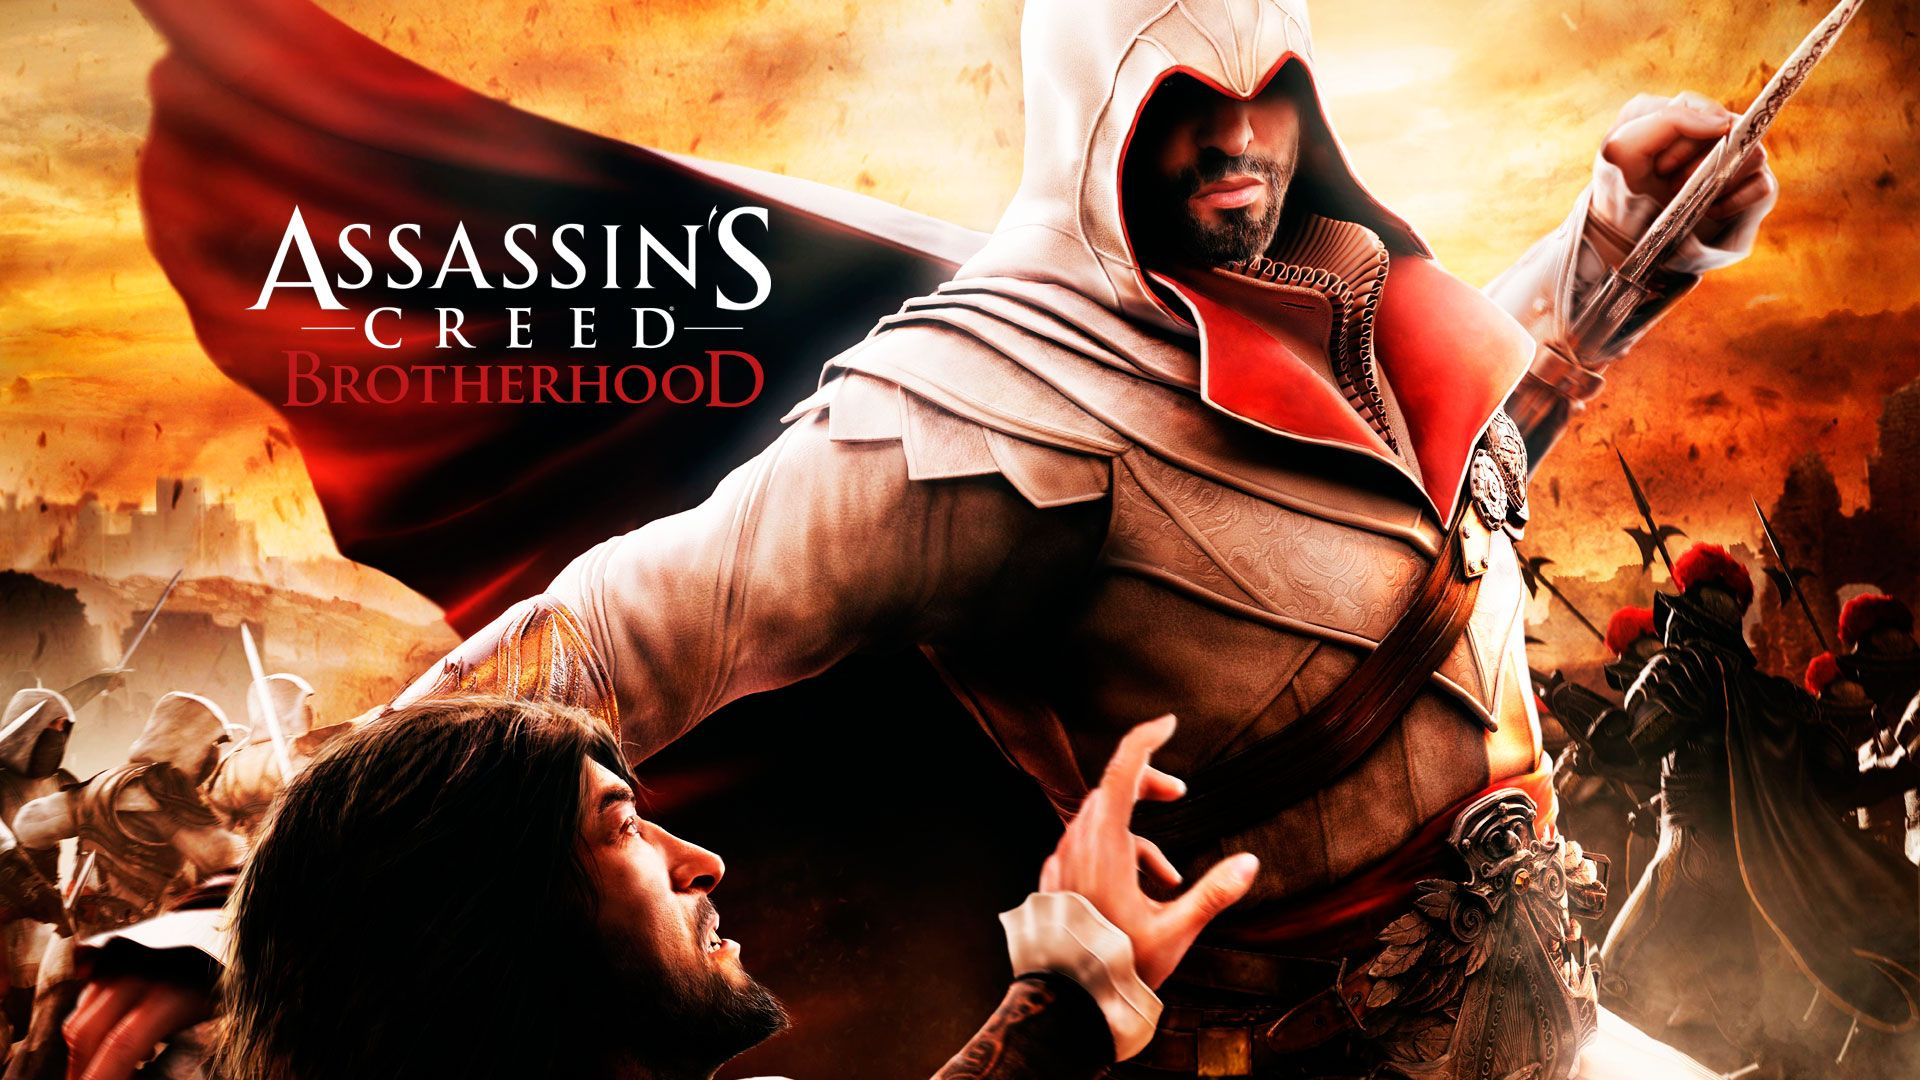 Assassin S Creed Brotherhood Wallpapers Top Free Assassin S